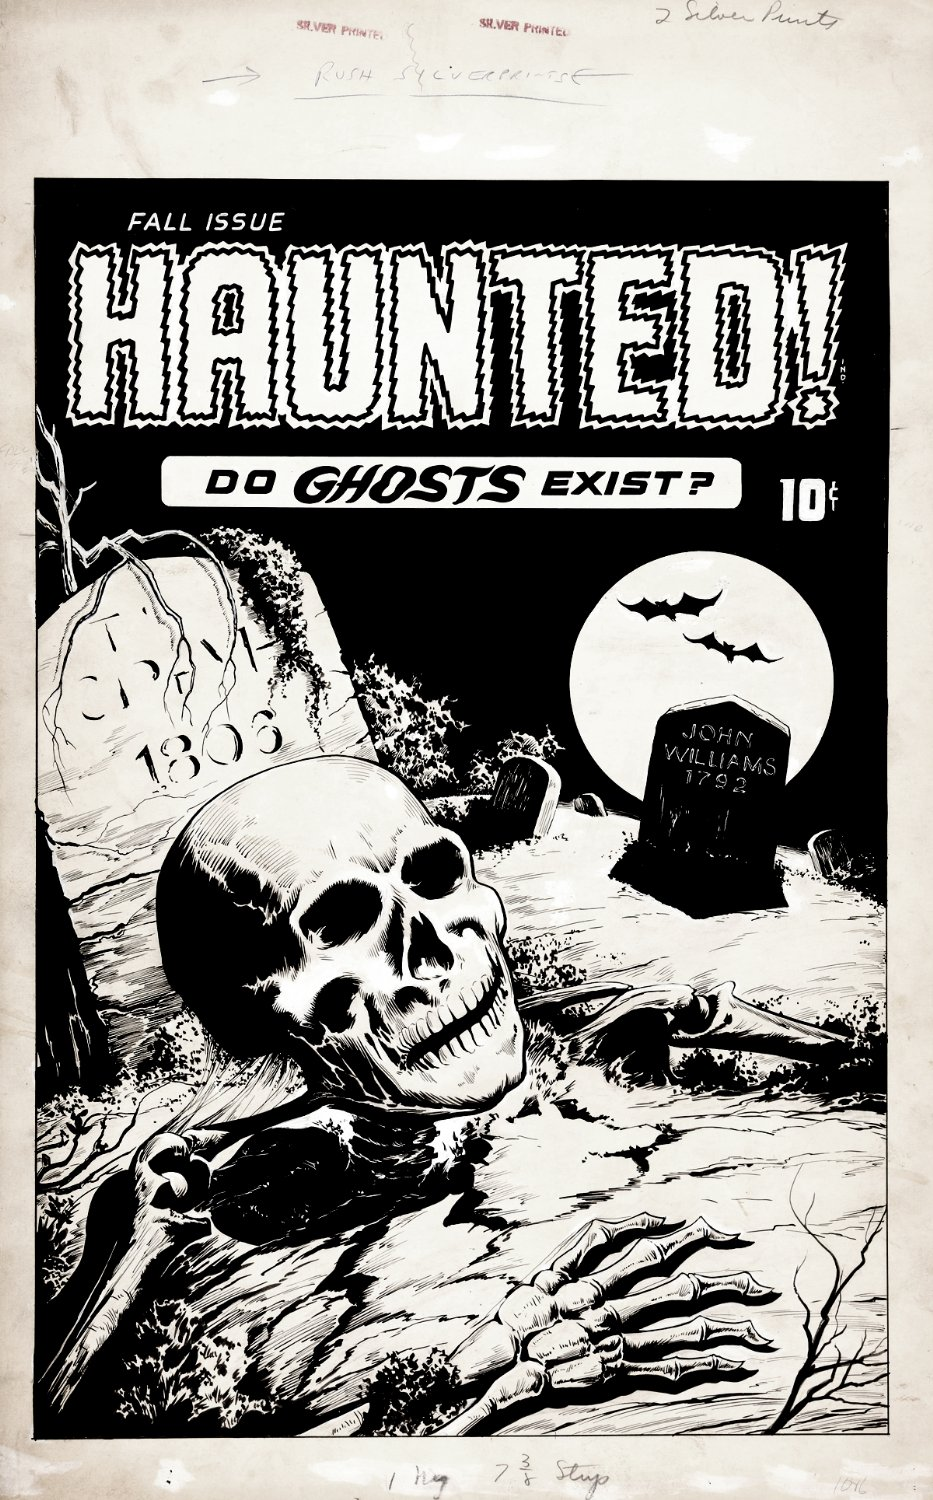 HAUNTED! Large Art Cover (HAND DRAWN DETAILED LOGO & STORY TITLE!) 1950s